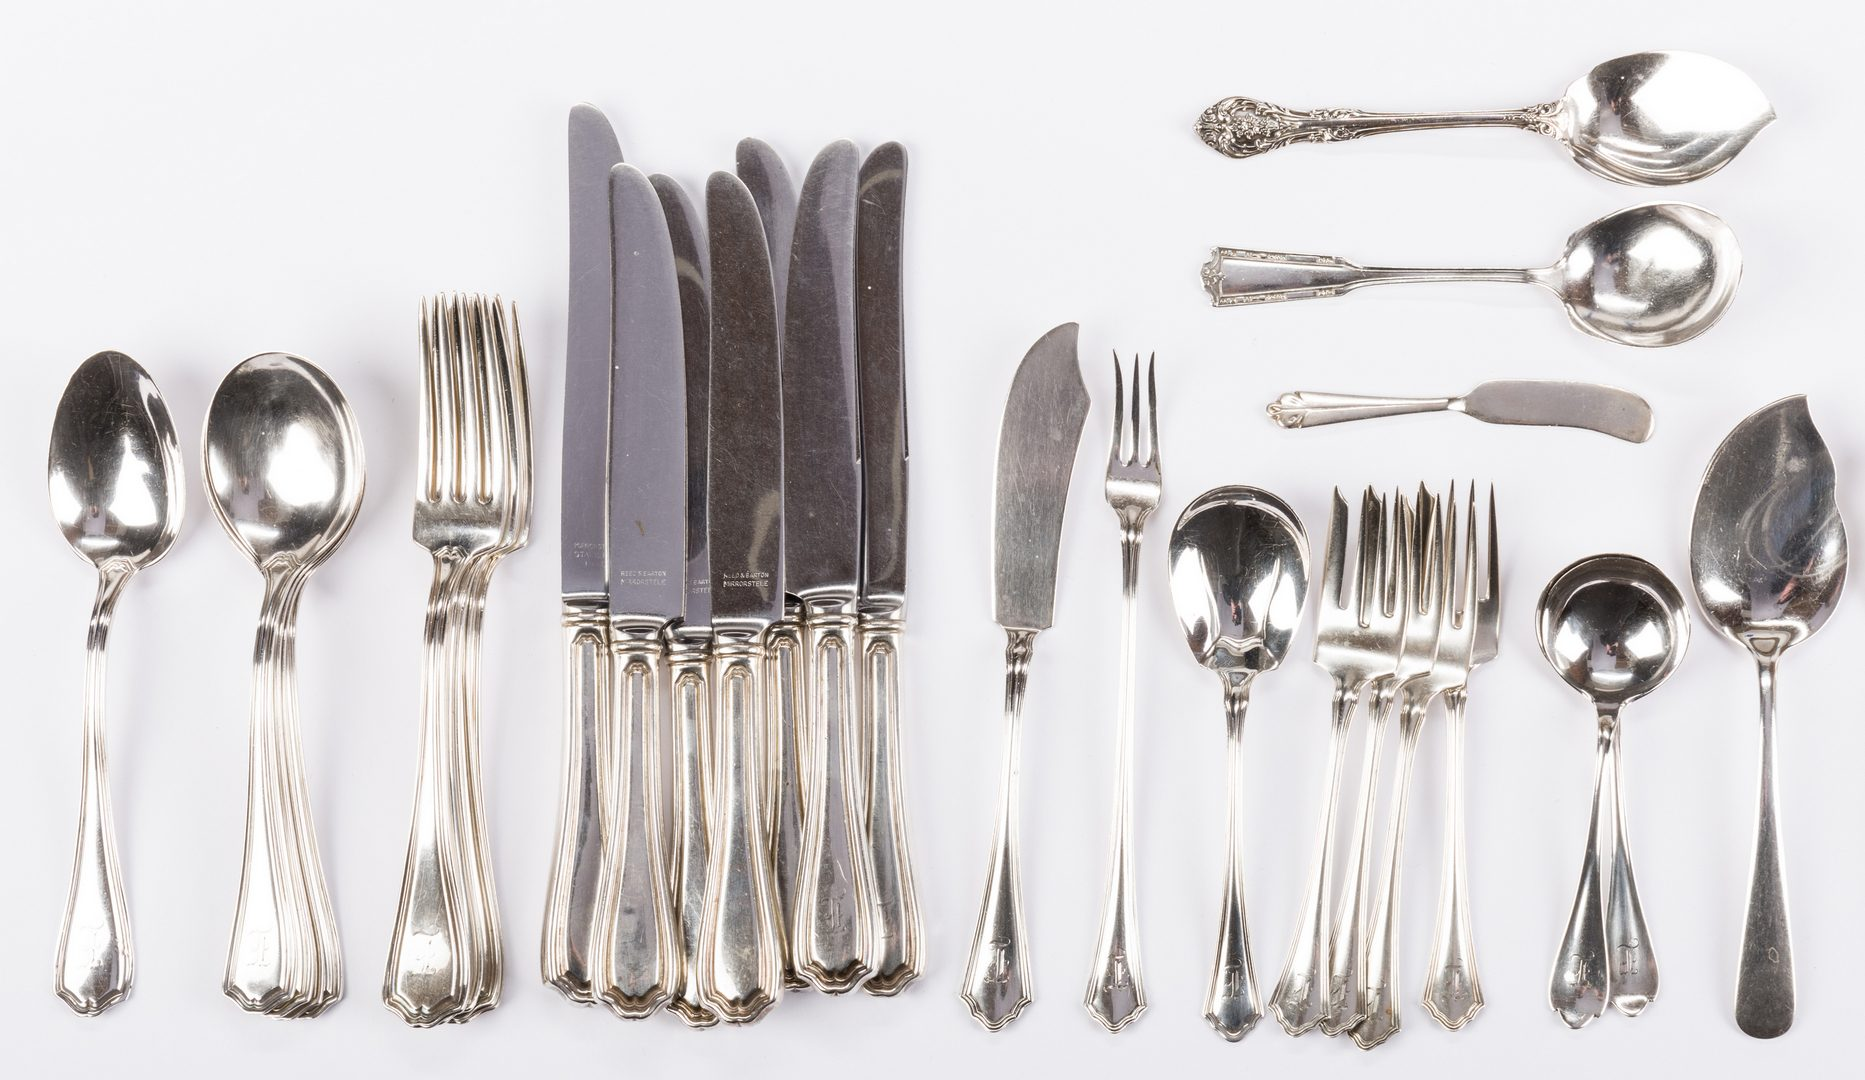 Lot 548: 48 pcs Assorted Sterling and Coin Silver Flatware